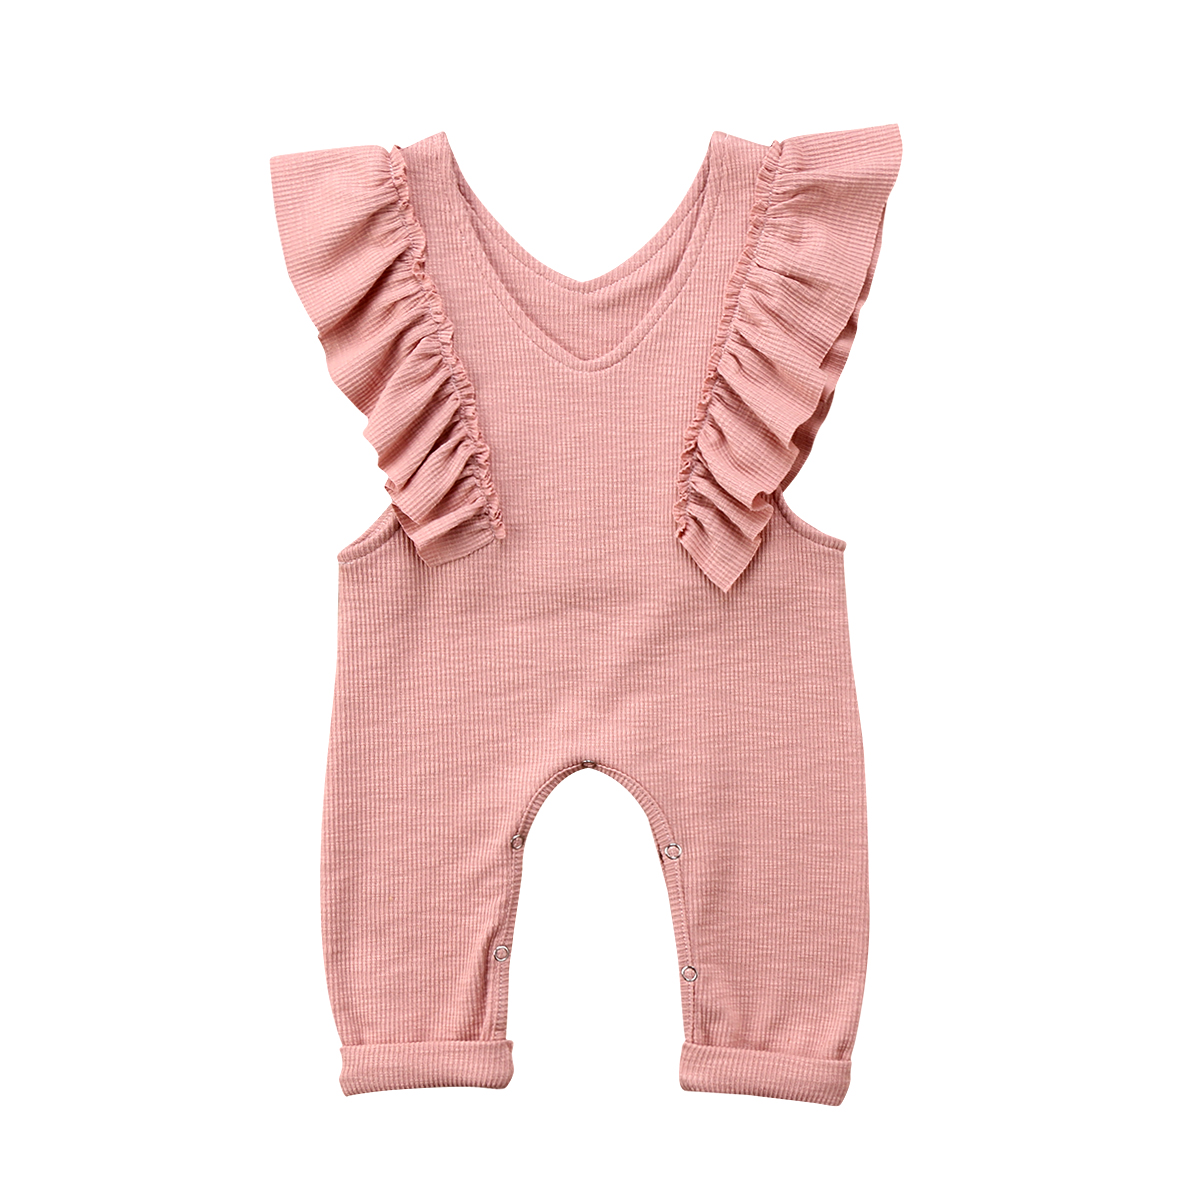 Toddler + Baby Girl Ruffle Loose Jumpsuit Romper Overalls - Adorable Amazon Outfits for Baby Girls and Toddlers by popular North Carolina style blogger, Glitter, Inc.